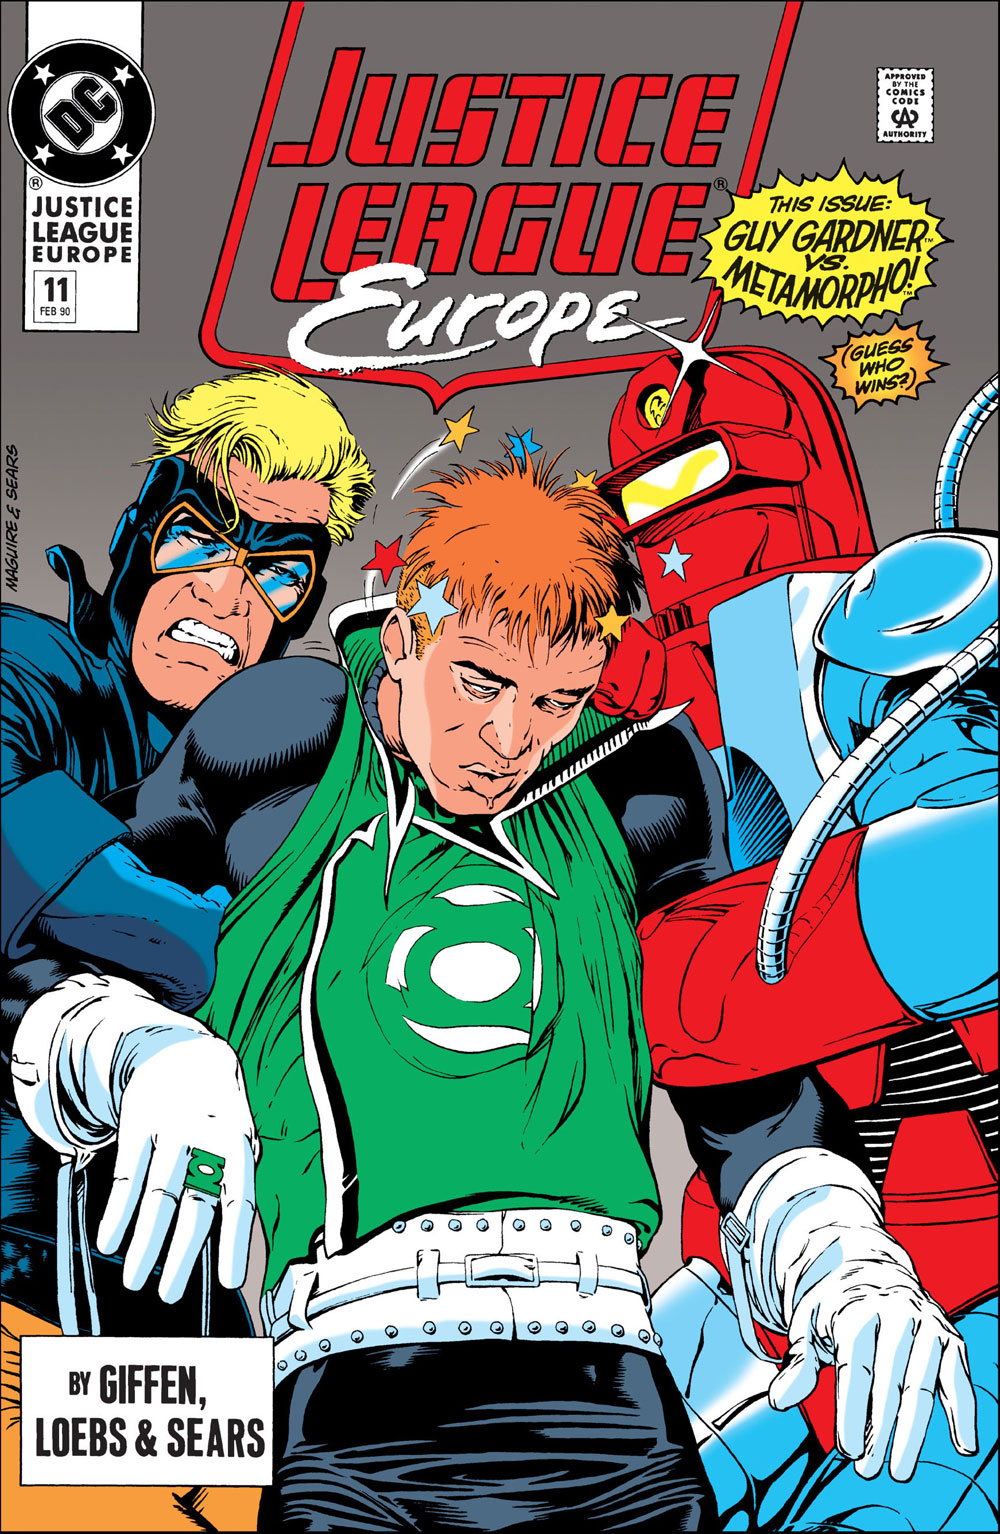 Justice League Europe #11 cover by Kevin Maguire and Bart Sears